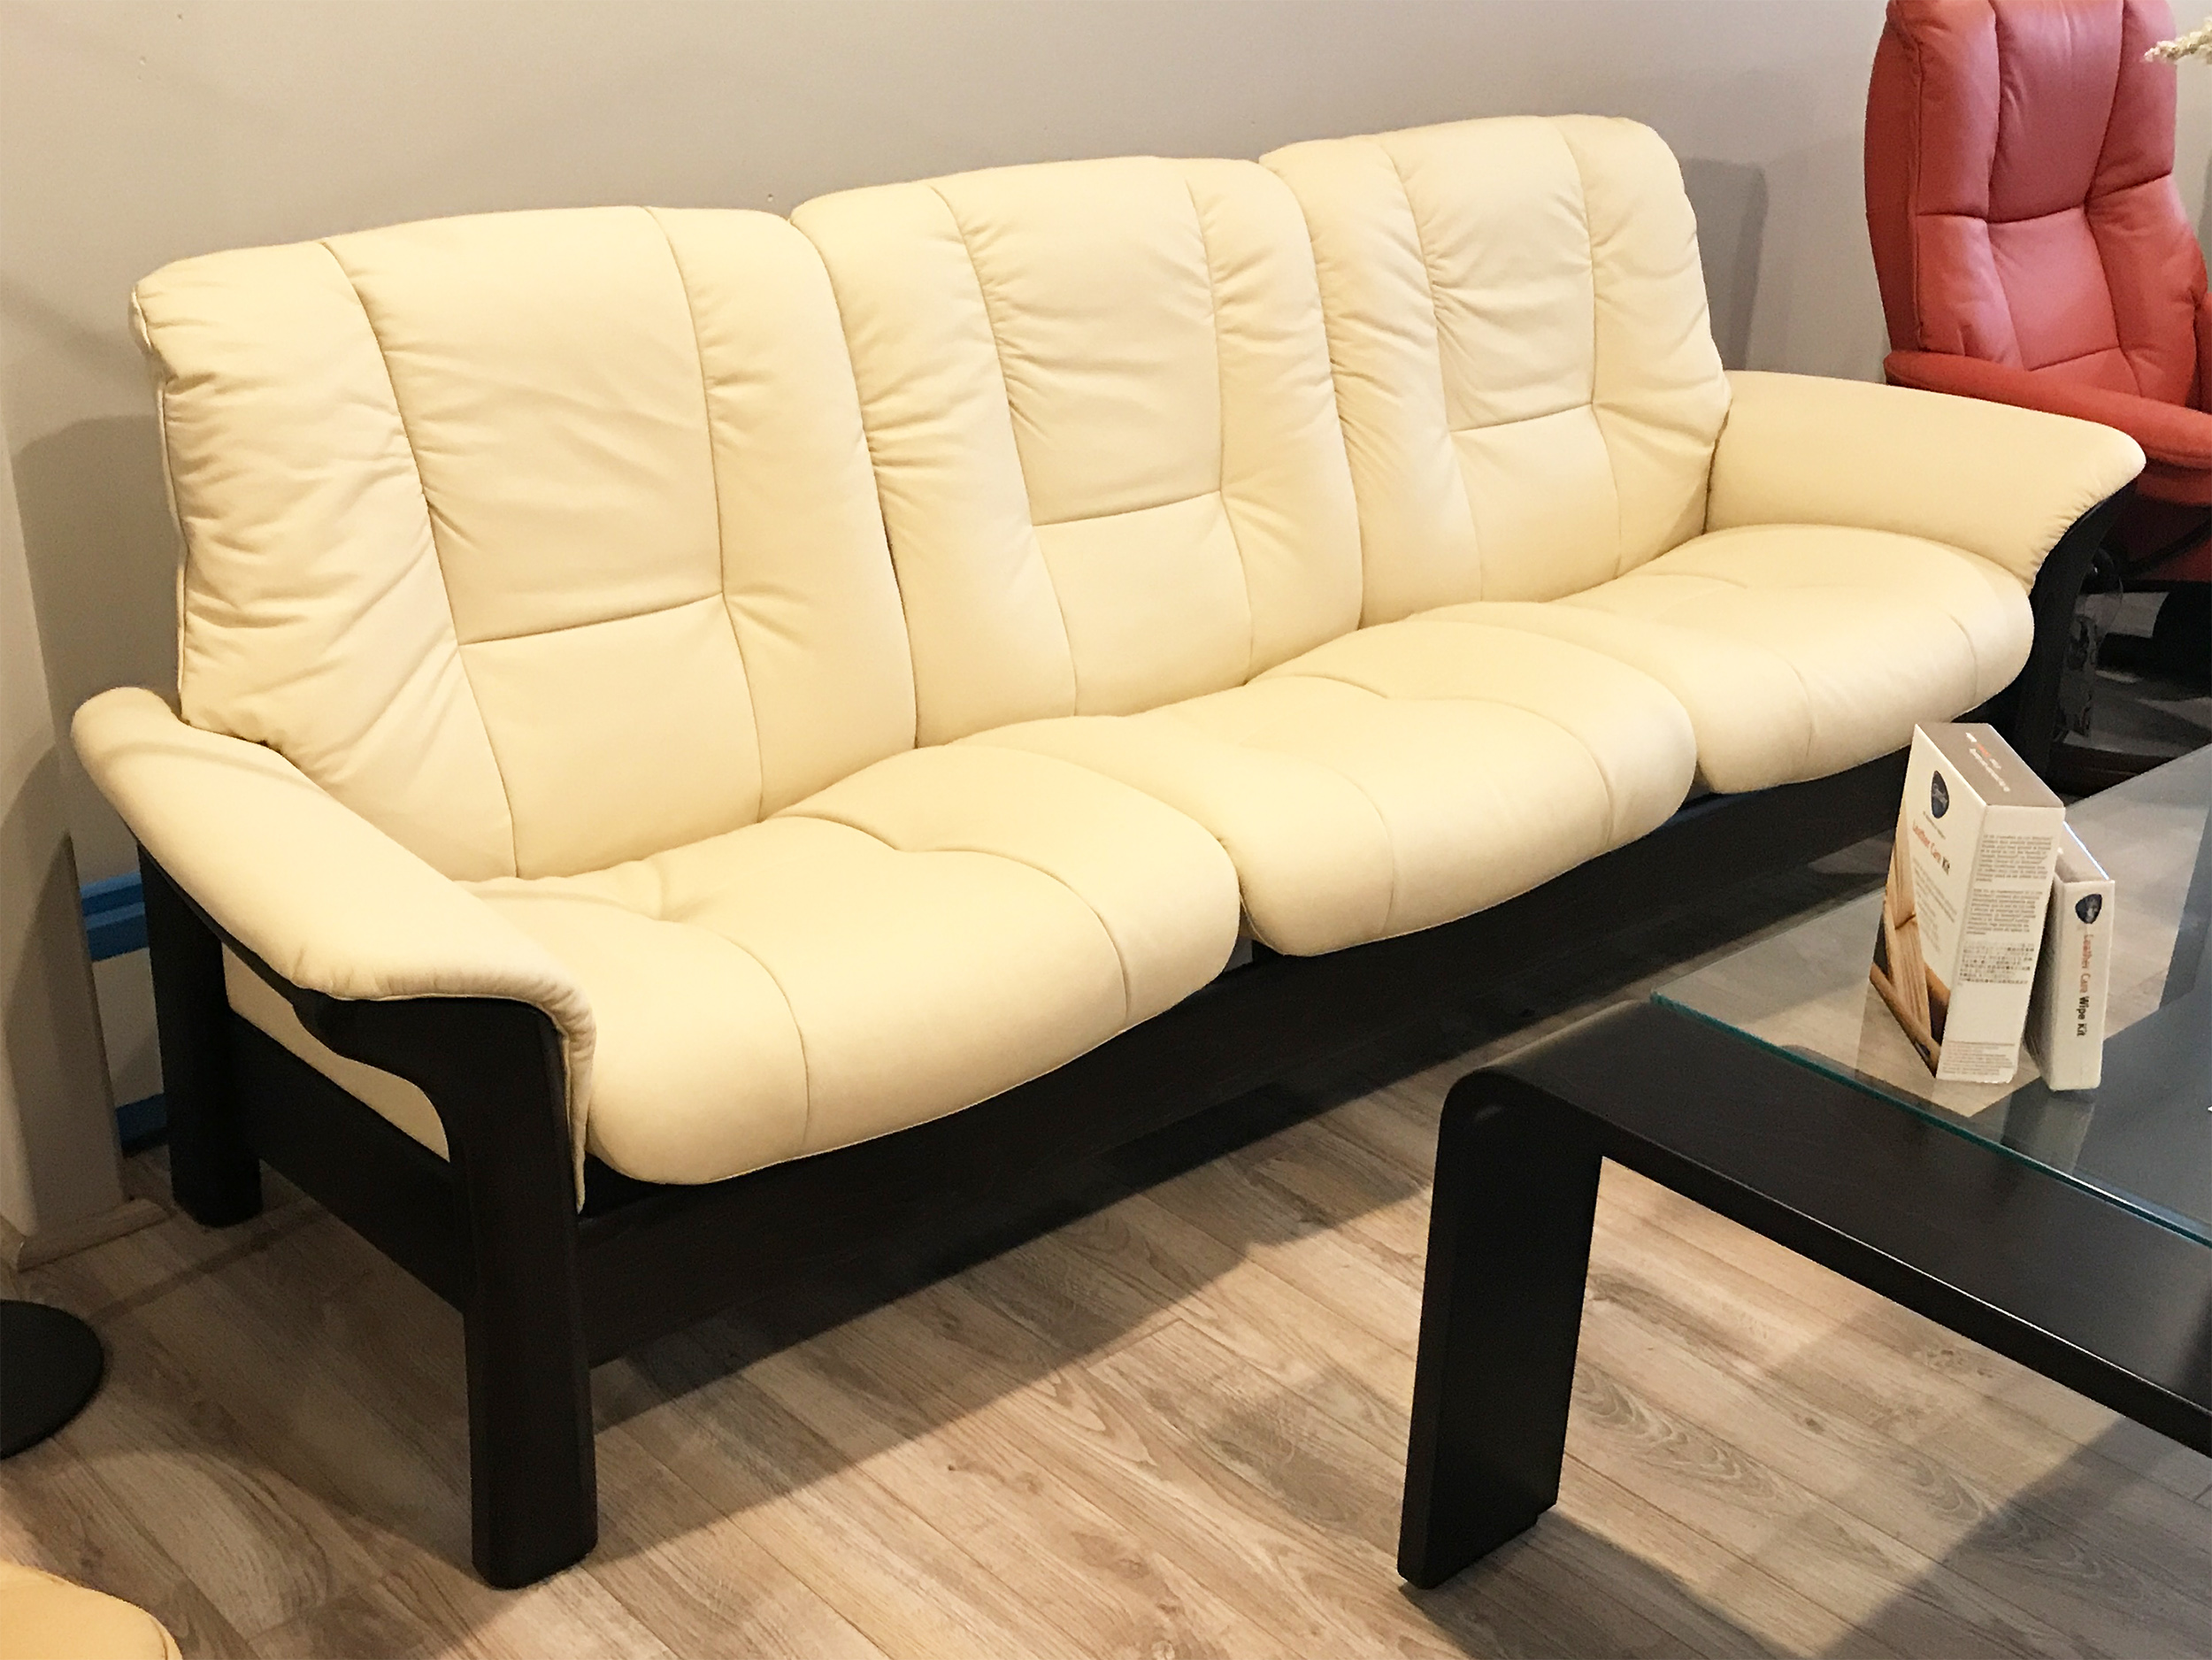 Stressless Buckingham 3 Seat Low Back Sofa Batick Cream